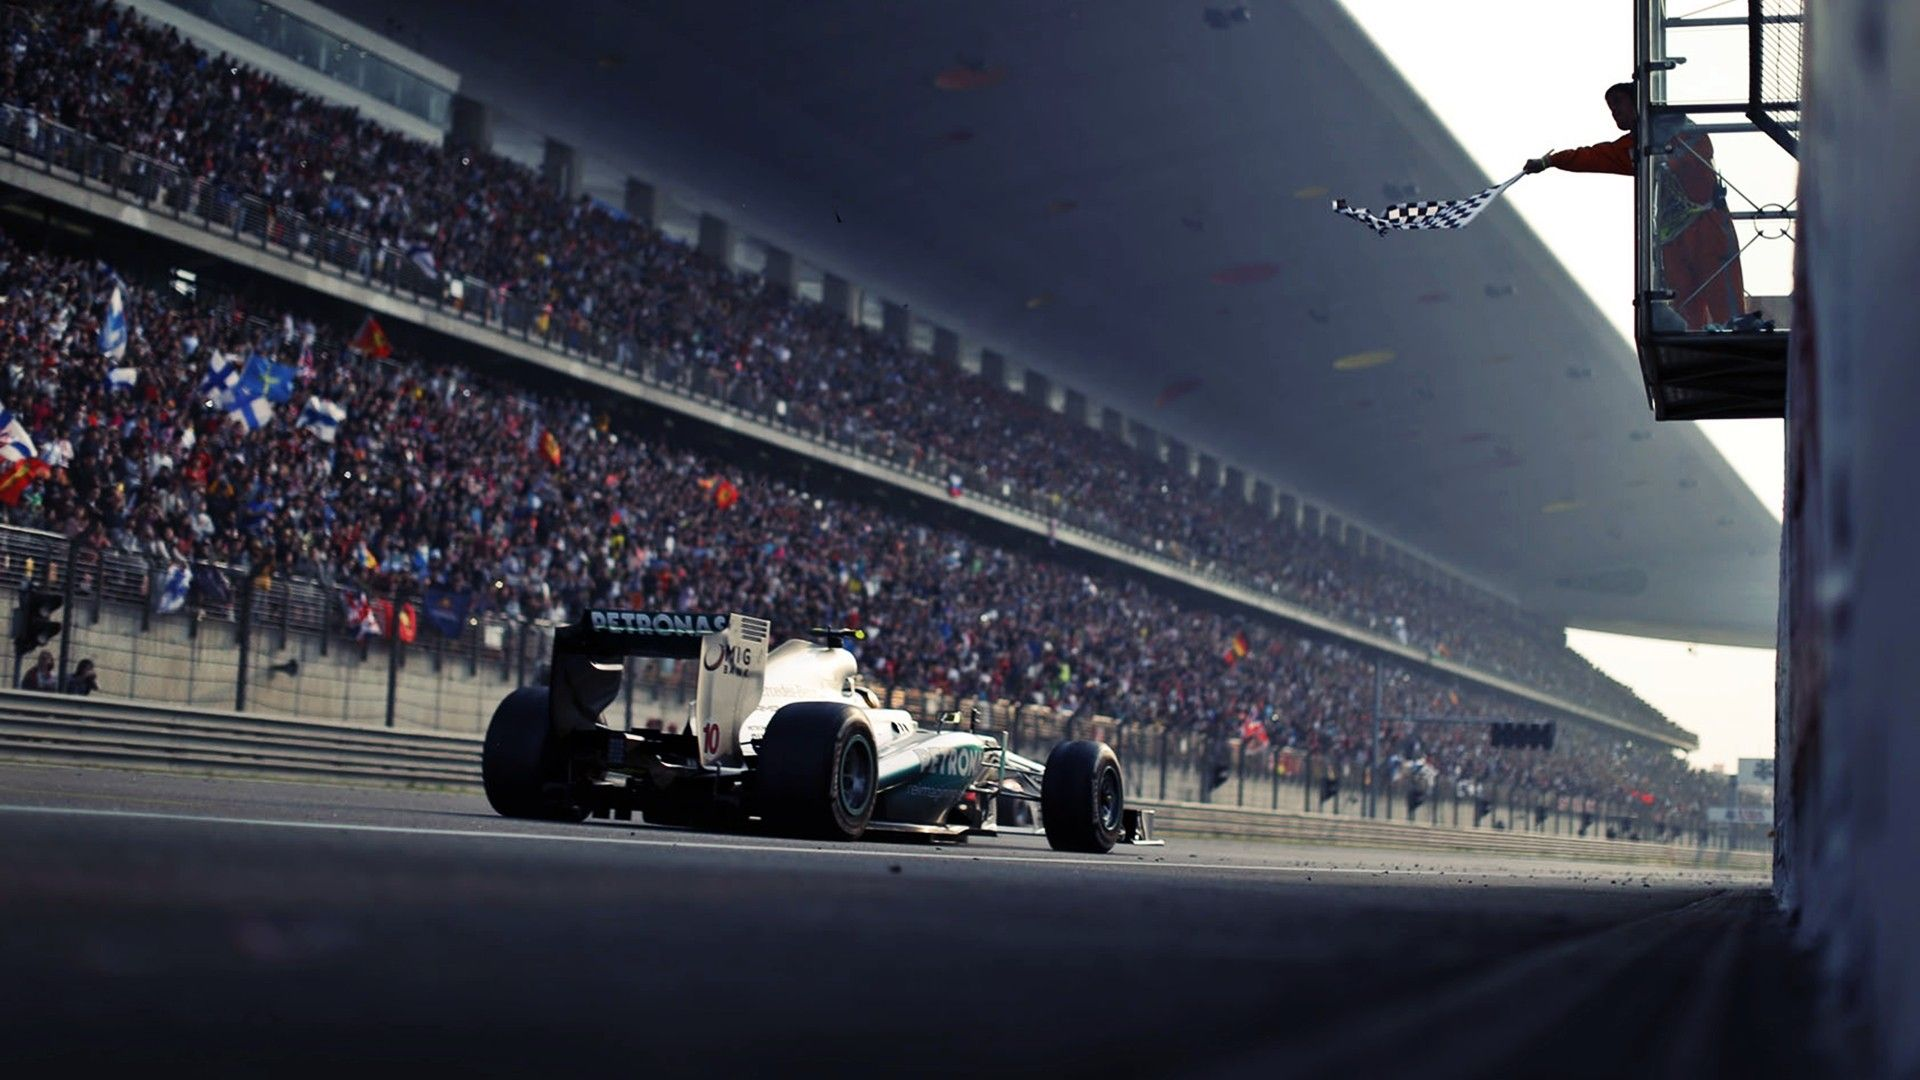 f1 mercedes wallpaper for windows #0rt | cars | pinterest